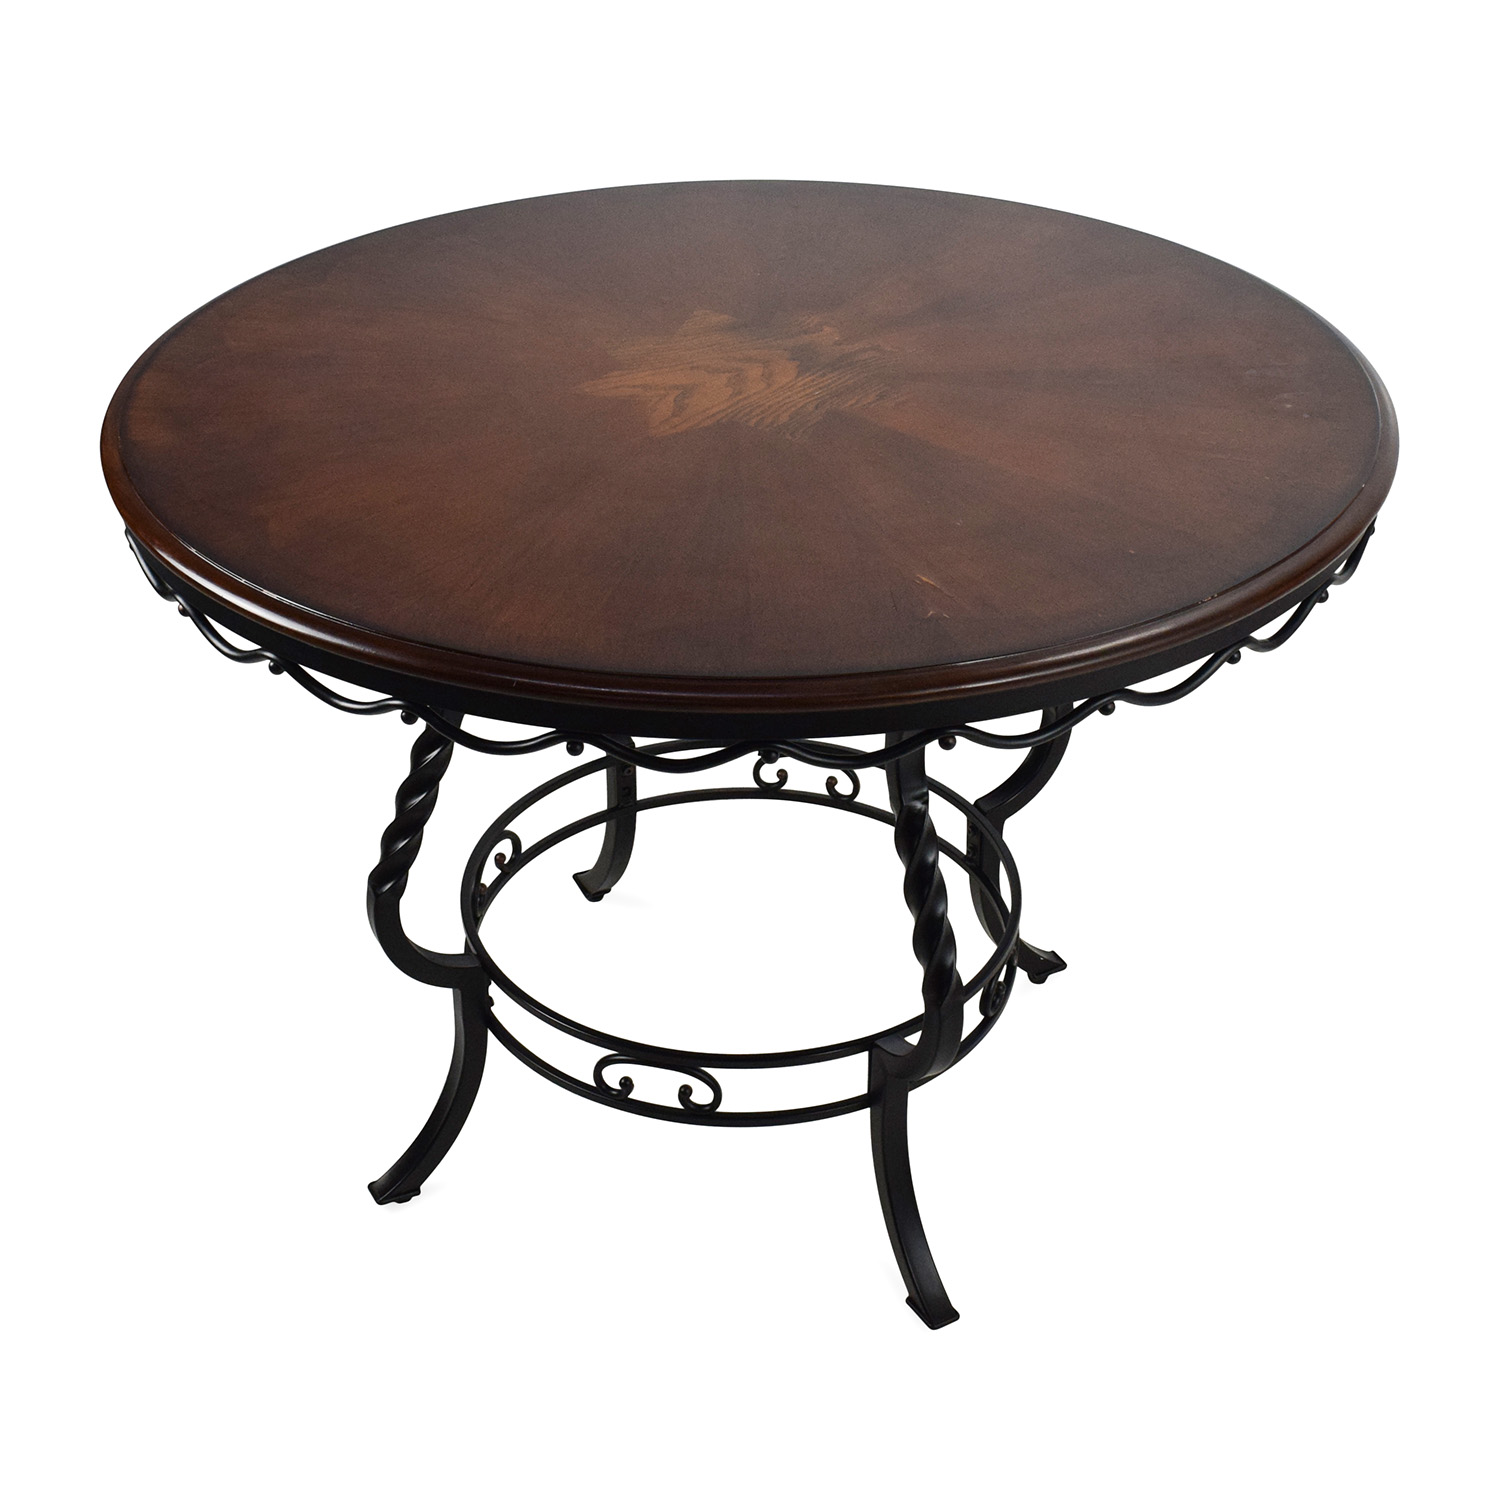 84 off ashley furniture ashley nola round dining table for Furniture dining table